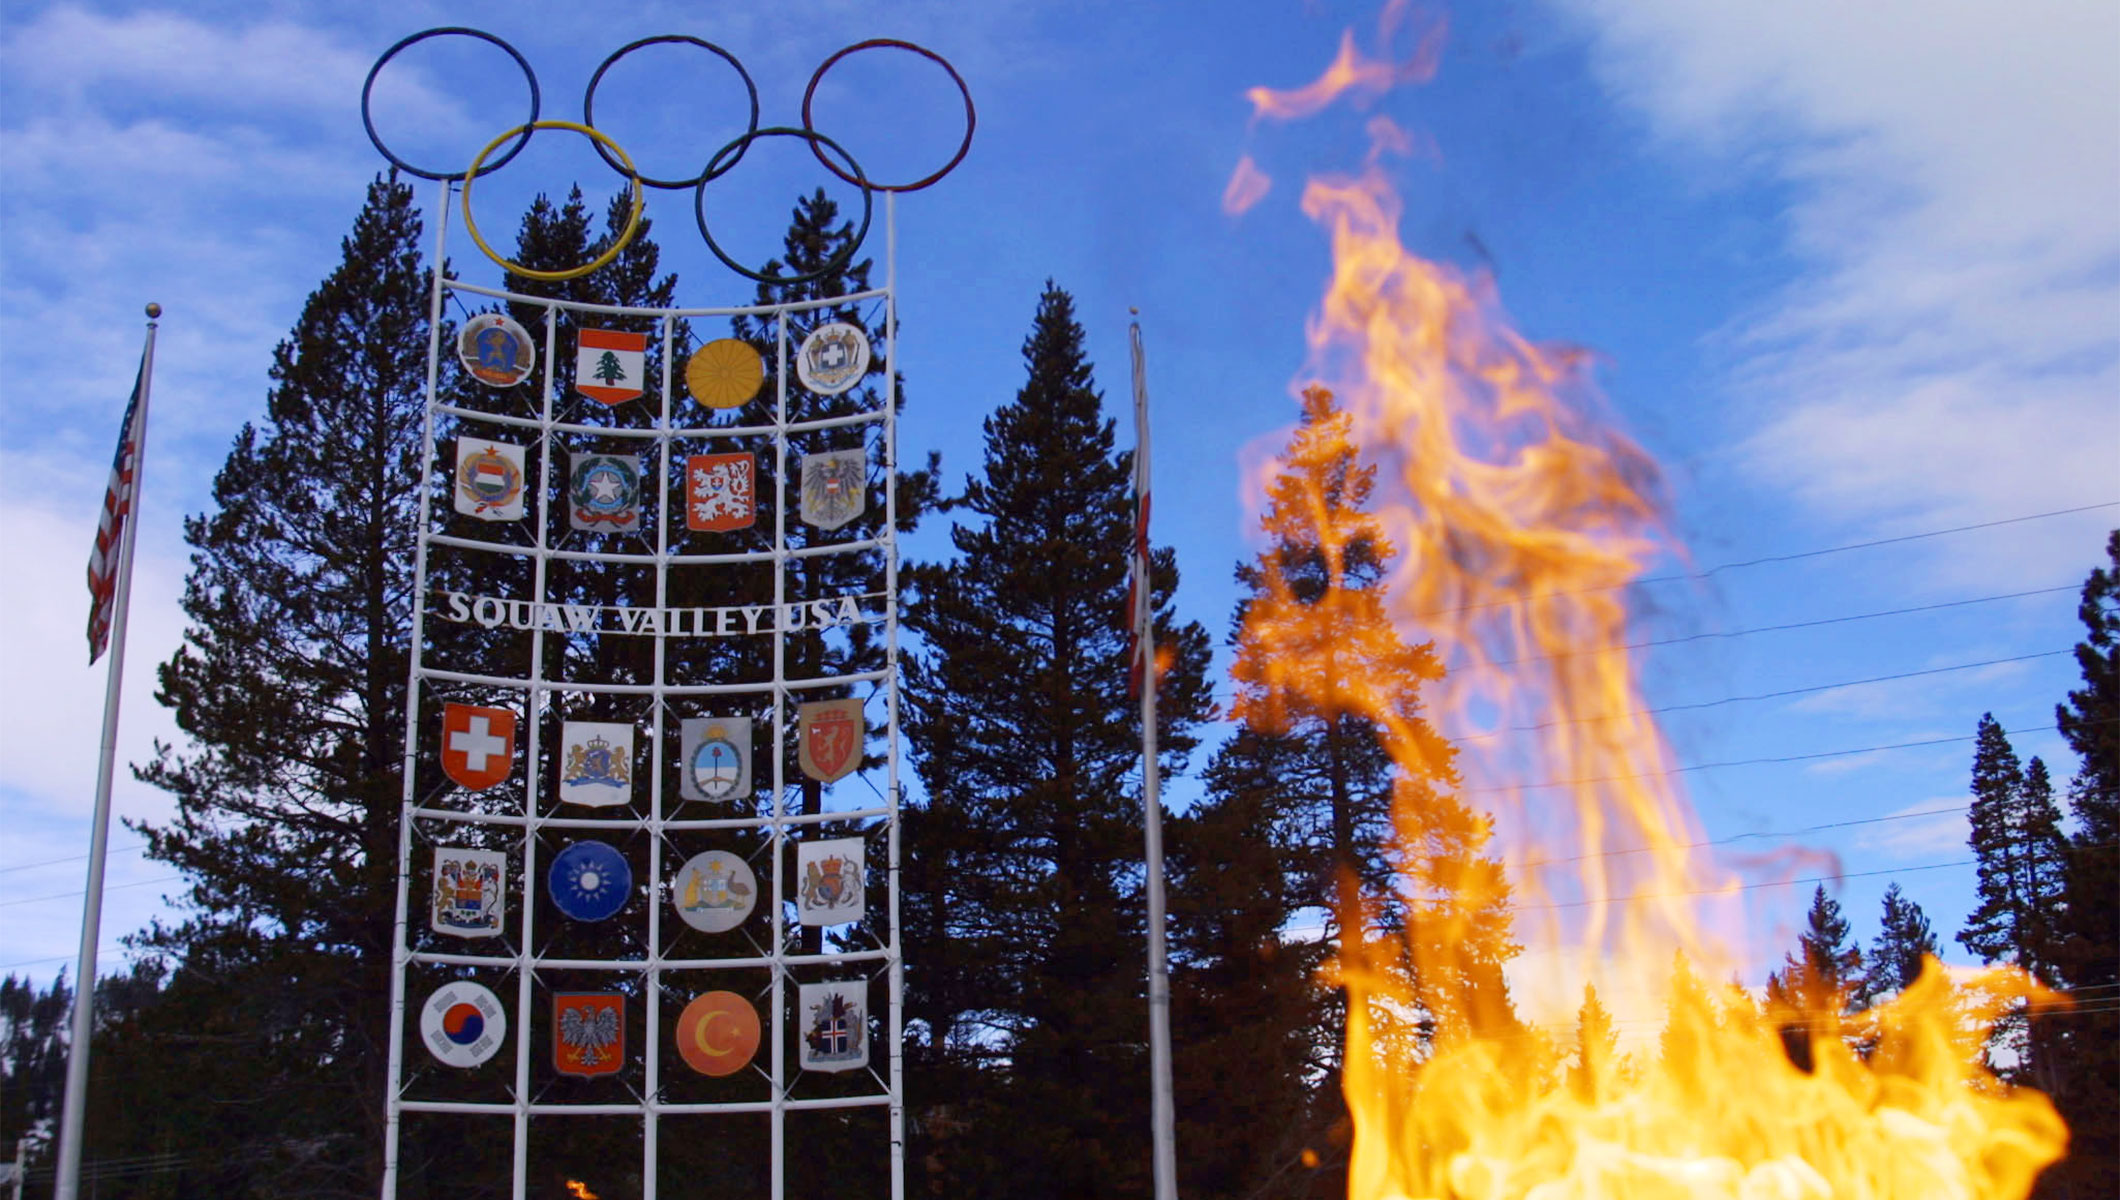 legacy of olympics 8 9 types of olympic legacy the games can leave an array of legacies within a host city, covering not only sport but also social, economic and environmental gains.